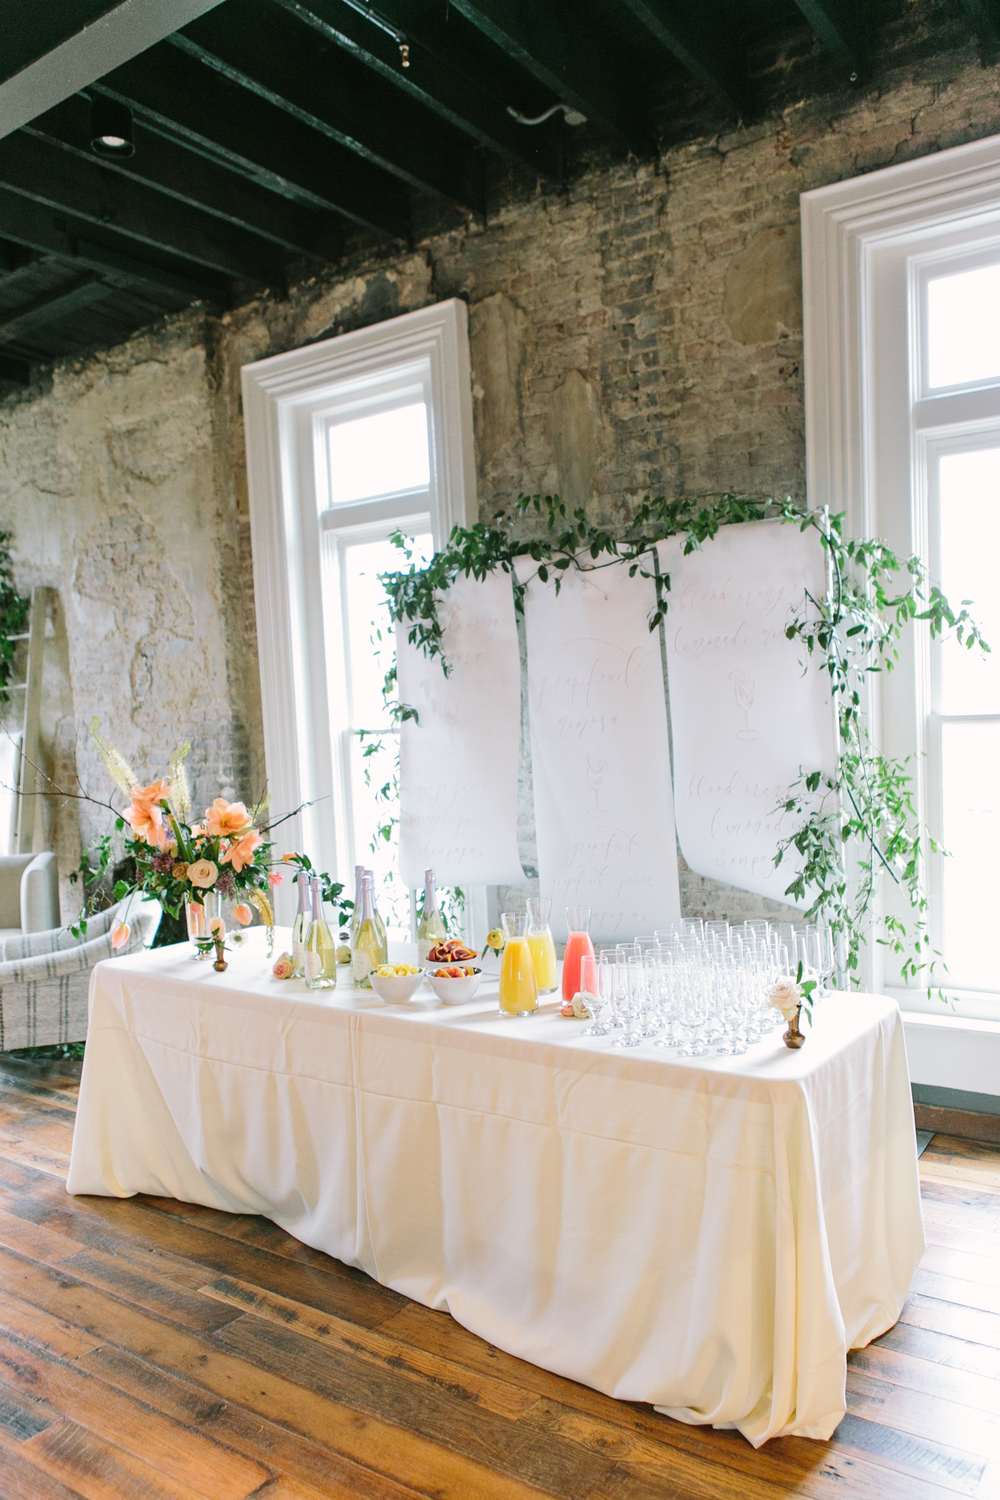 Mimosa Bar Inspiration | The Cordelle | The School of Styling Nashville - A three-day hands-on workshop for creative entrepreneurs. Photo by Love, the Nelsons. http://www.theschoolofstyling.com